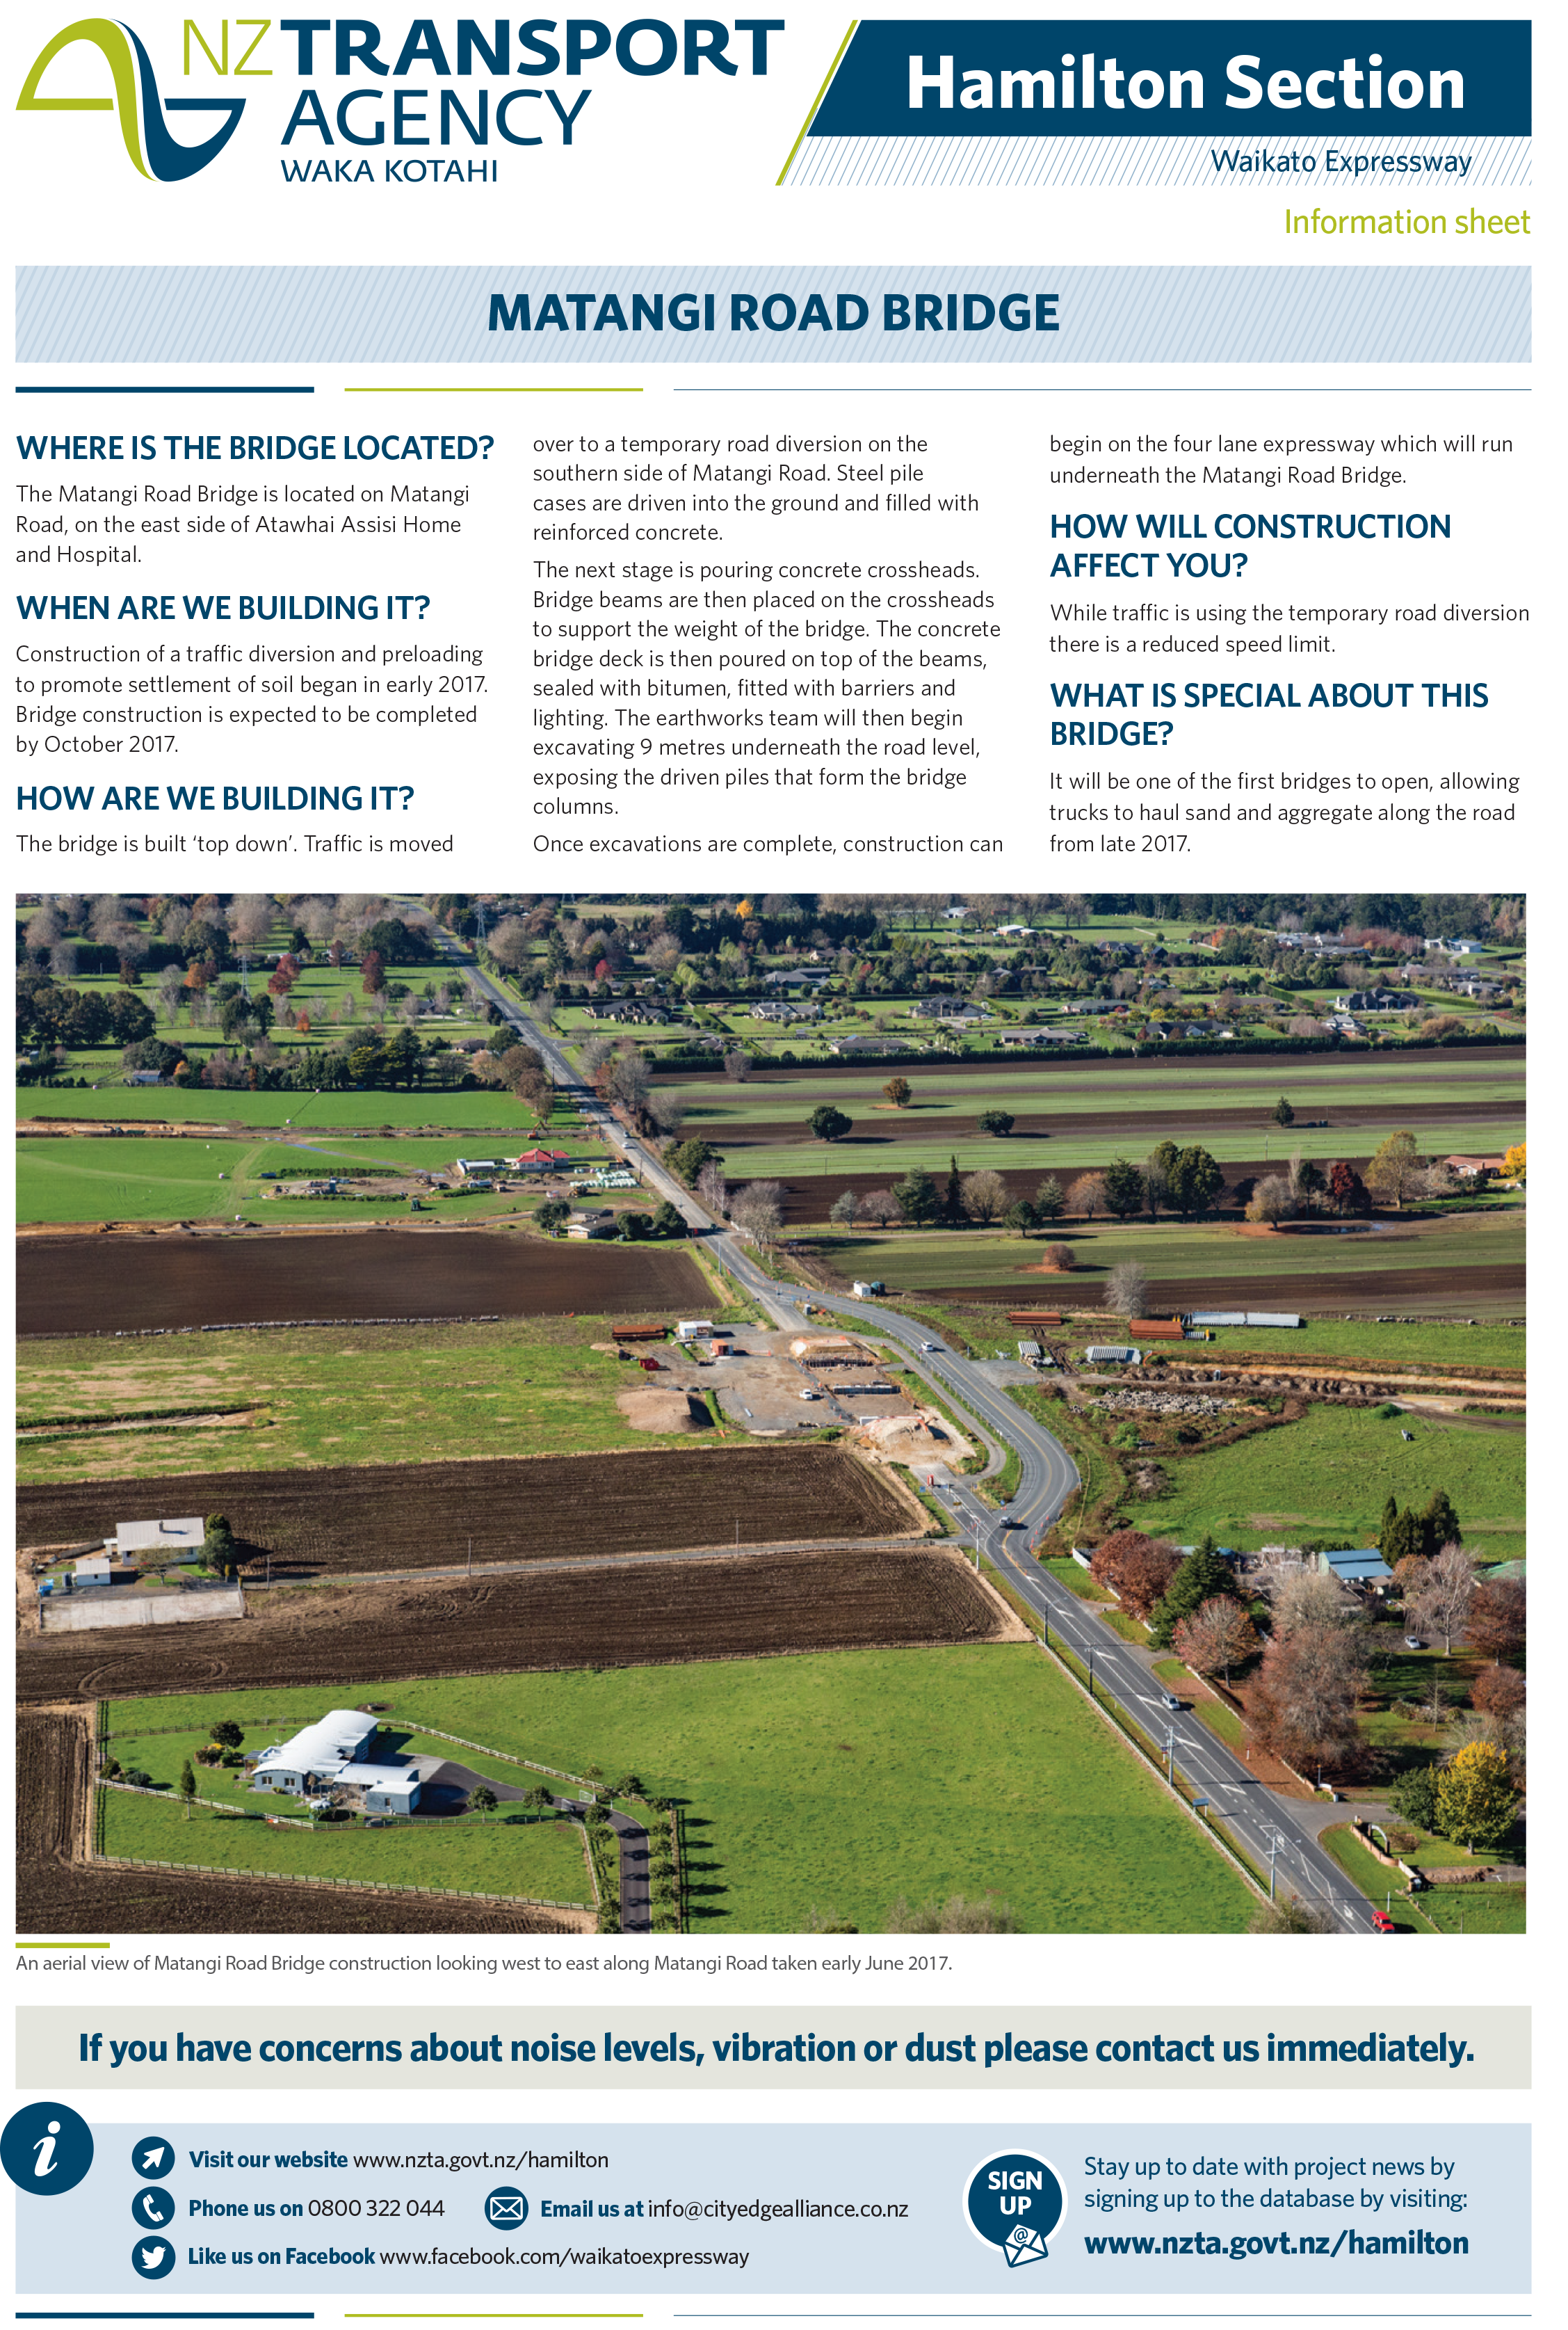 NZTA Information on Matangi Road Bridge